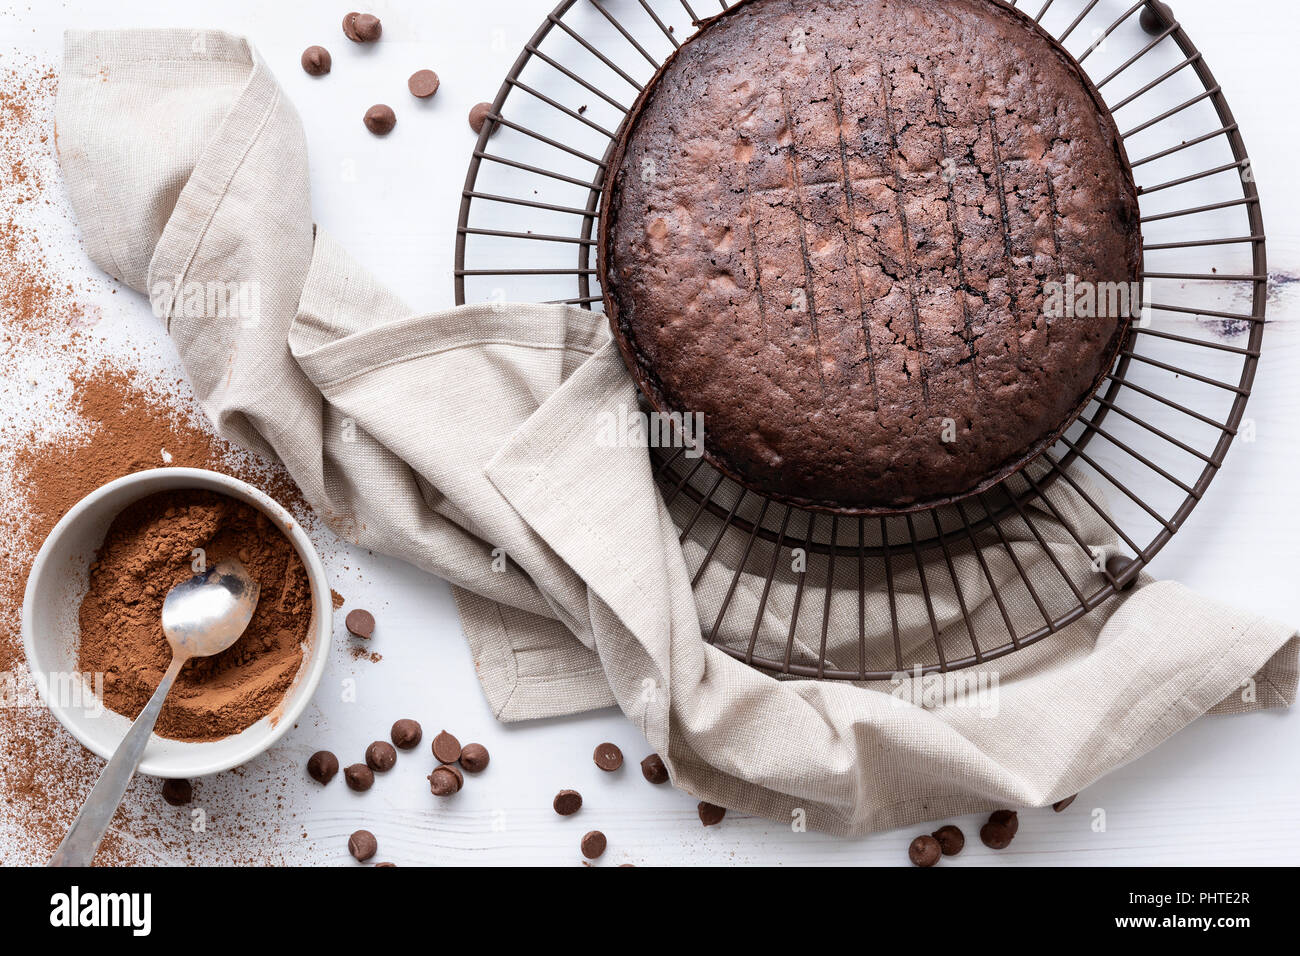 Round home baked chocolate cake cooling on a wire rack. - Stock Image